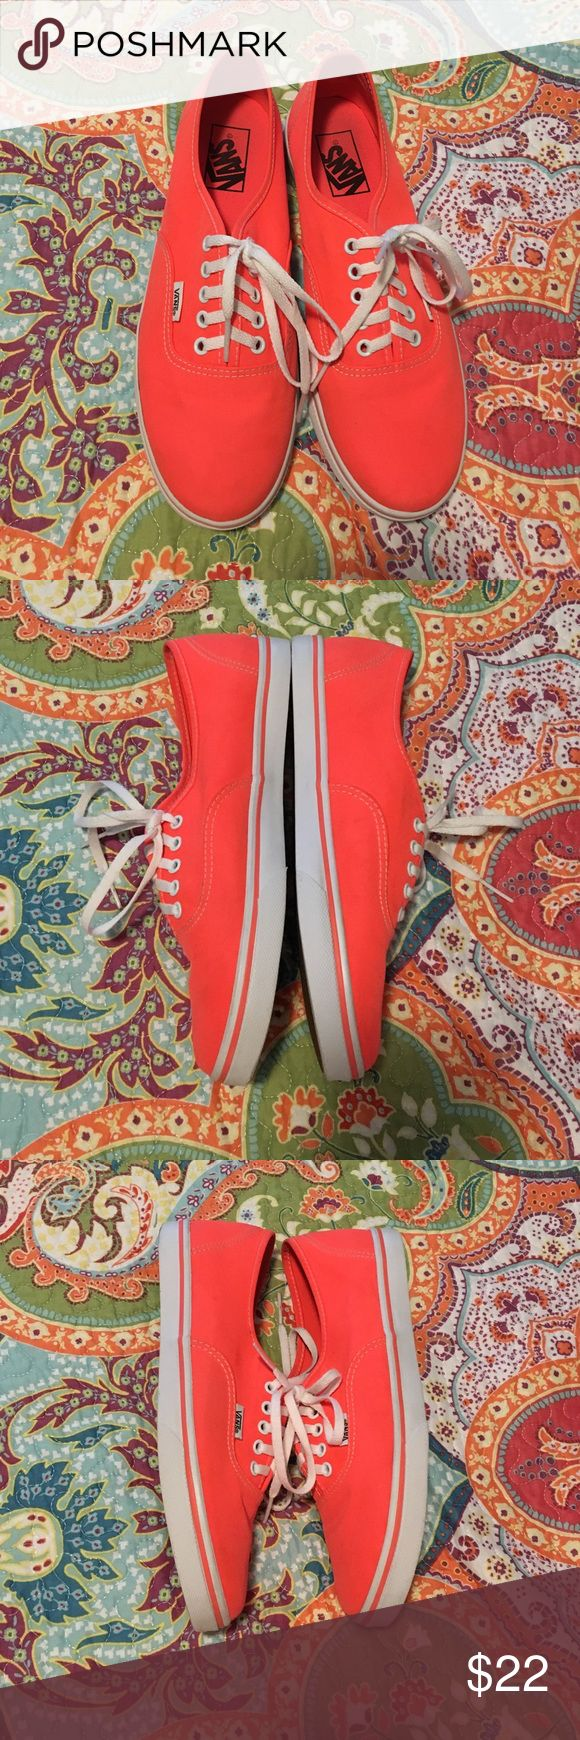 Neon Coral Vans A little bit of dirt on the upper that would probably come of with a light wash or scrub. Otherwise in great condition. Men's size 7 or Women's size 8.5 Vans Shoes Sneakers